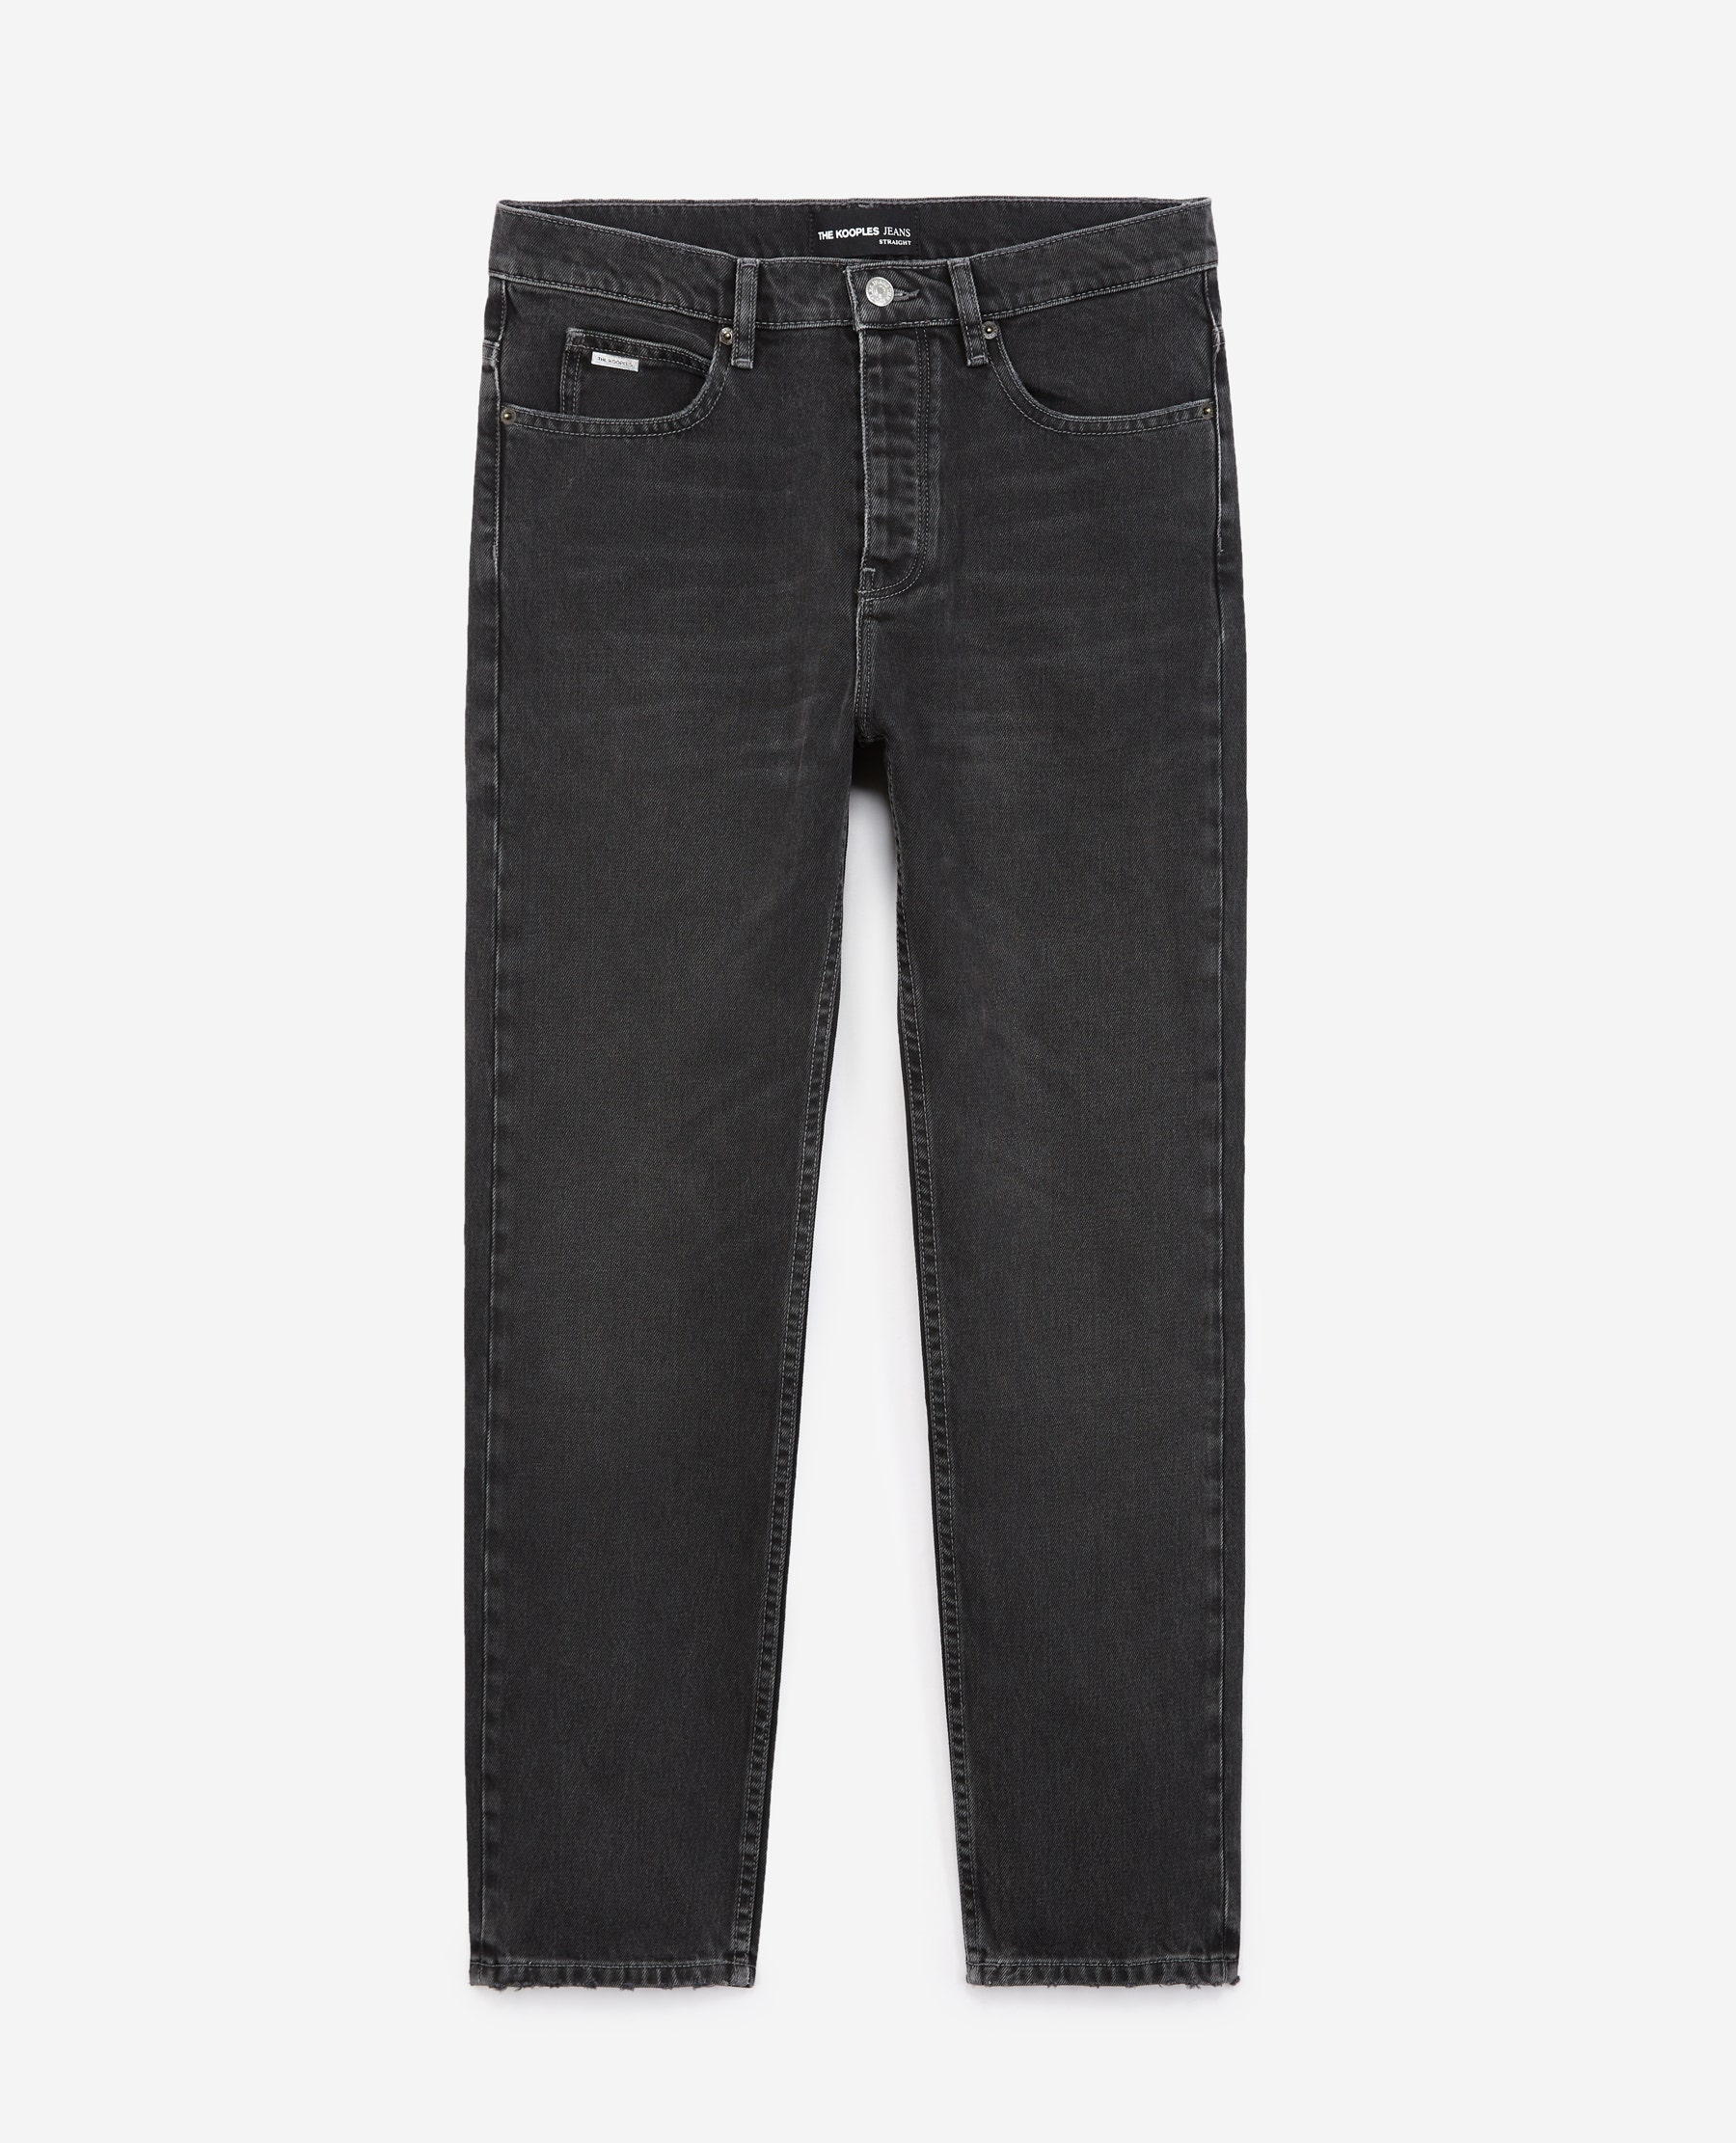 Jean noir brut droit coton stretch - The Kooples - Modalova